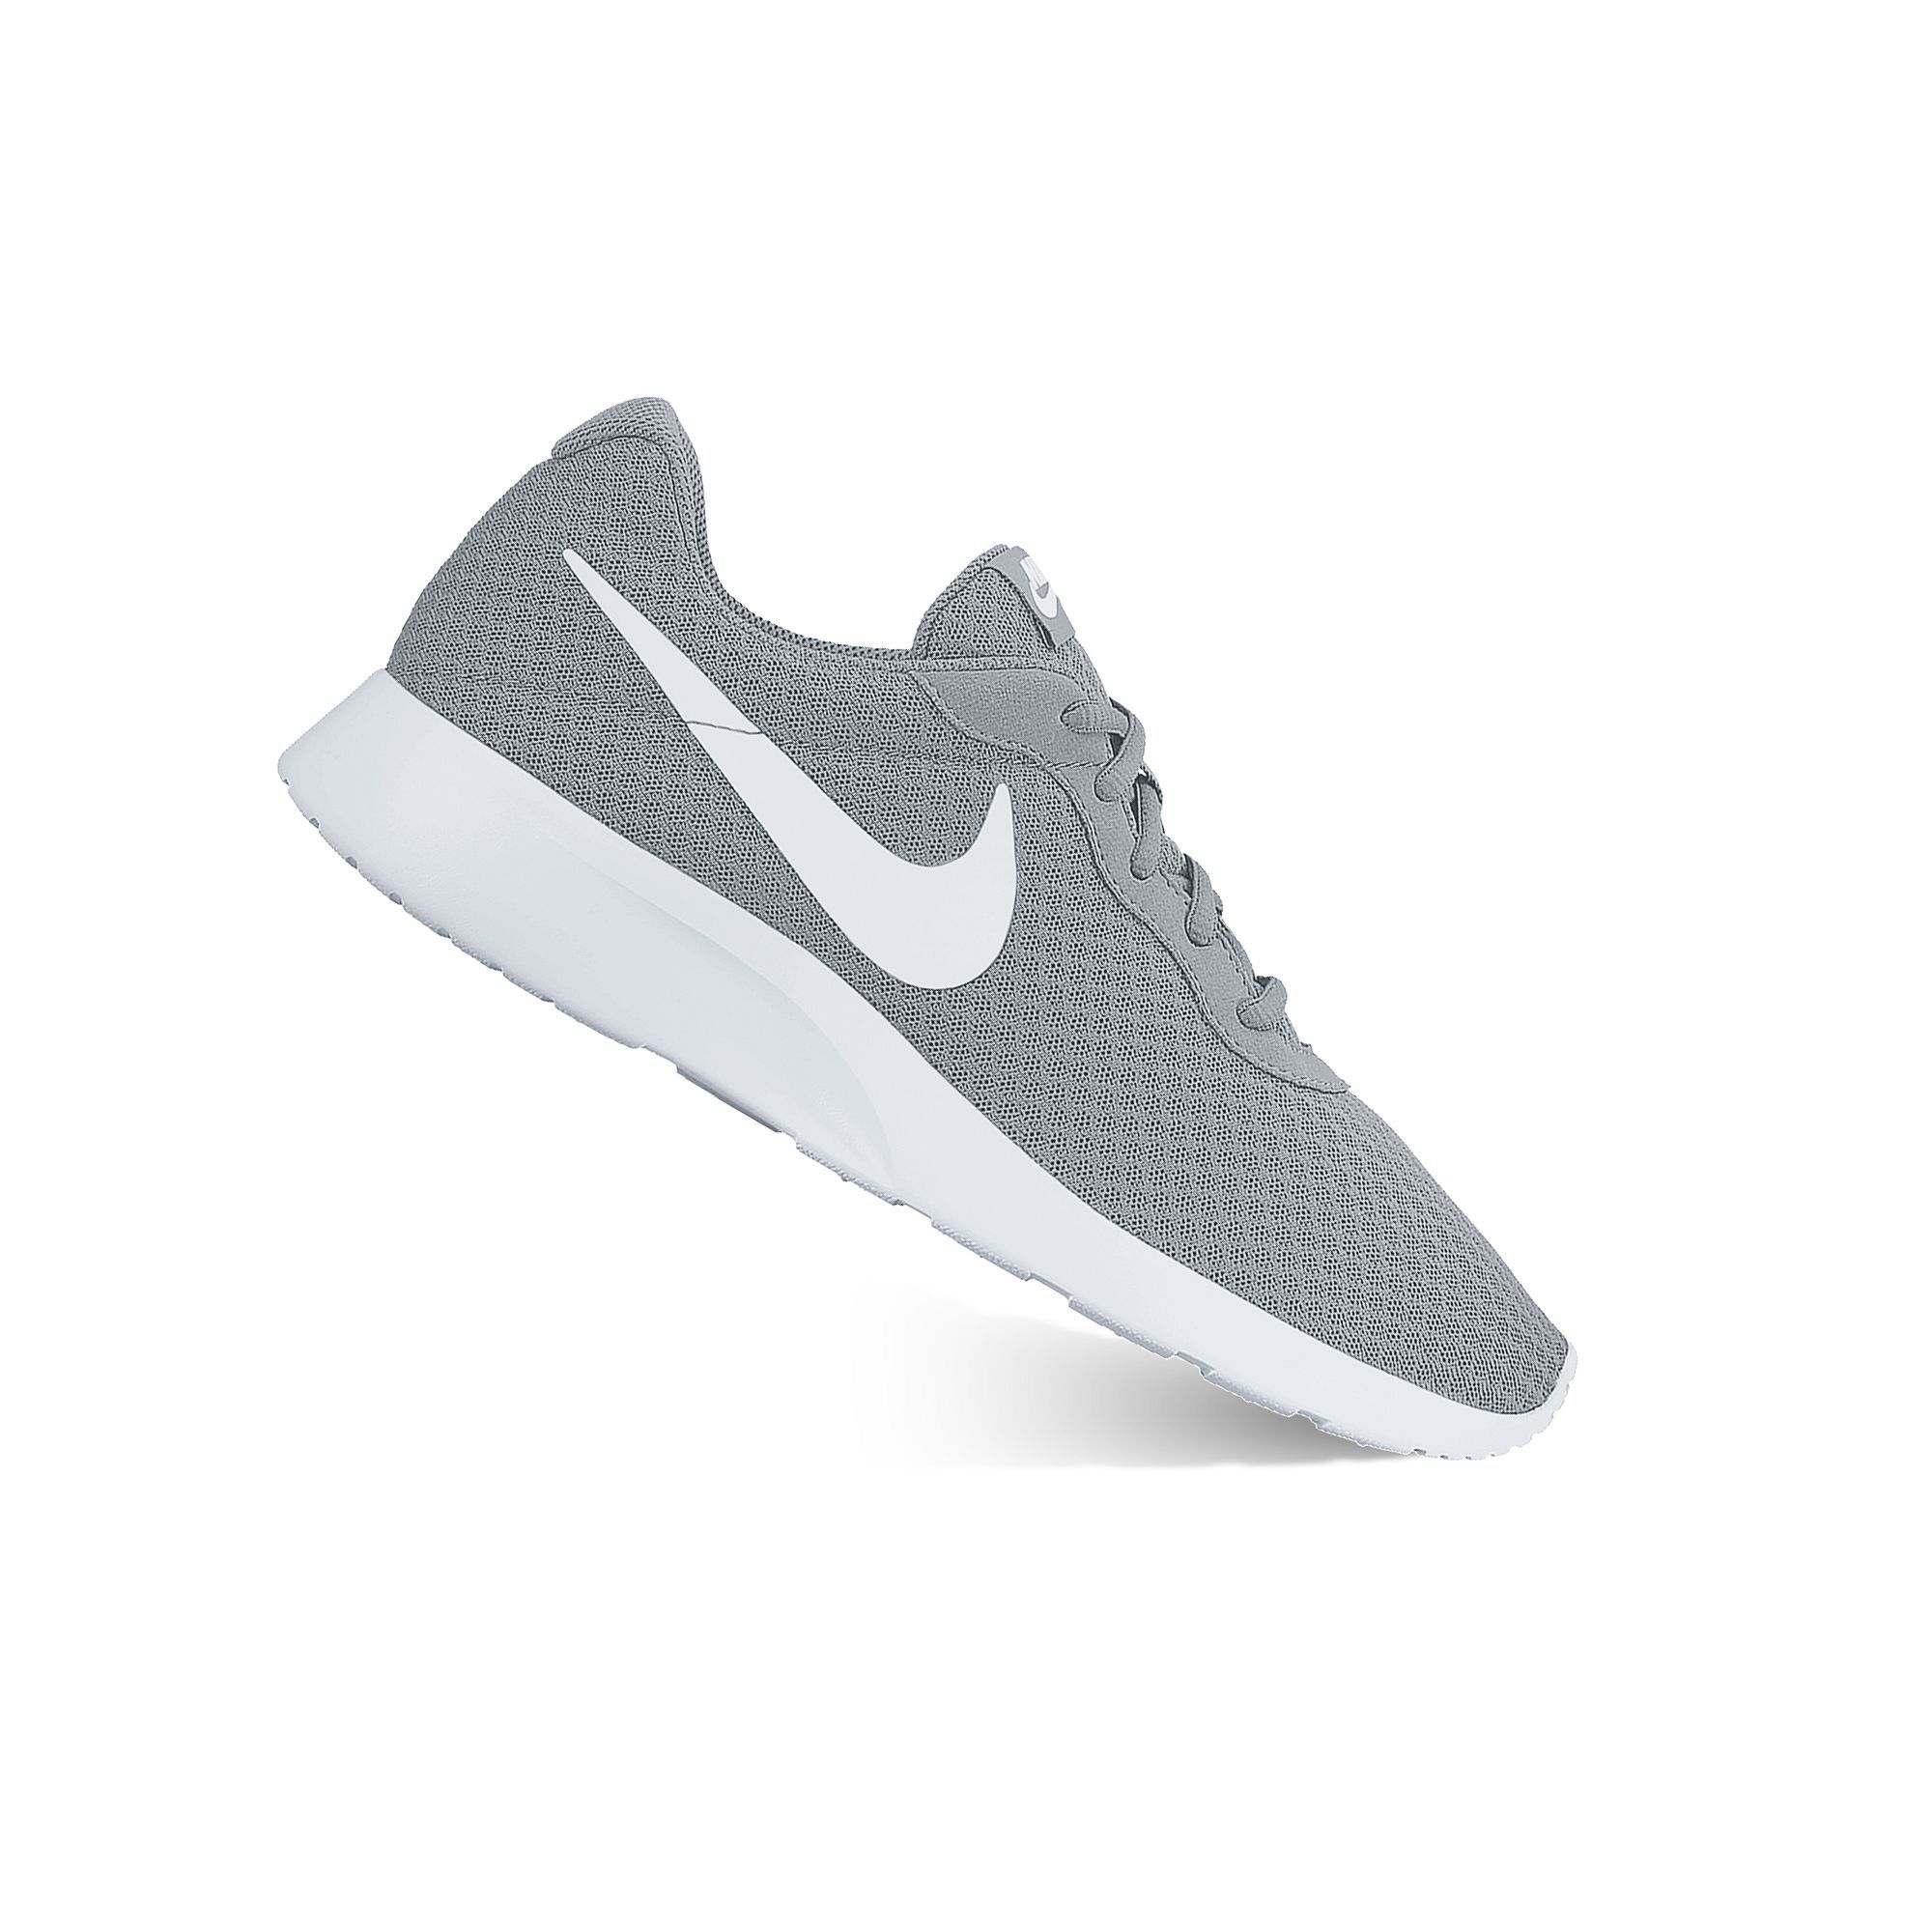 new product 18d7d 1a292 Nike Tanjun Men s Athletic Shoes, Size  10.5, Light Grey